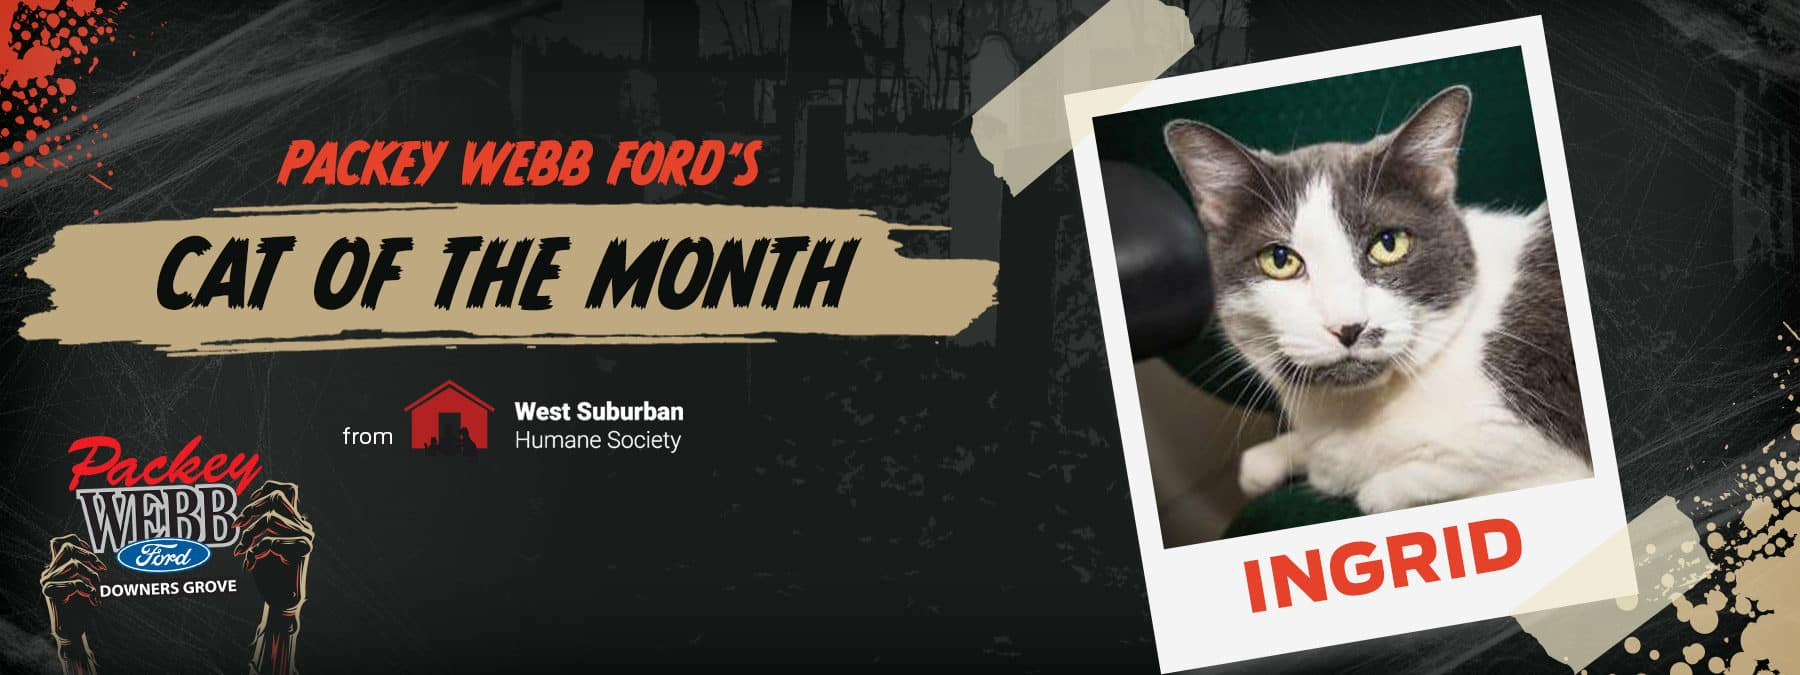 October Cat of the Month   Packey Webb Ford   Downers Grove, IL